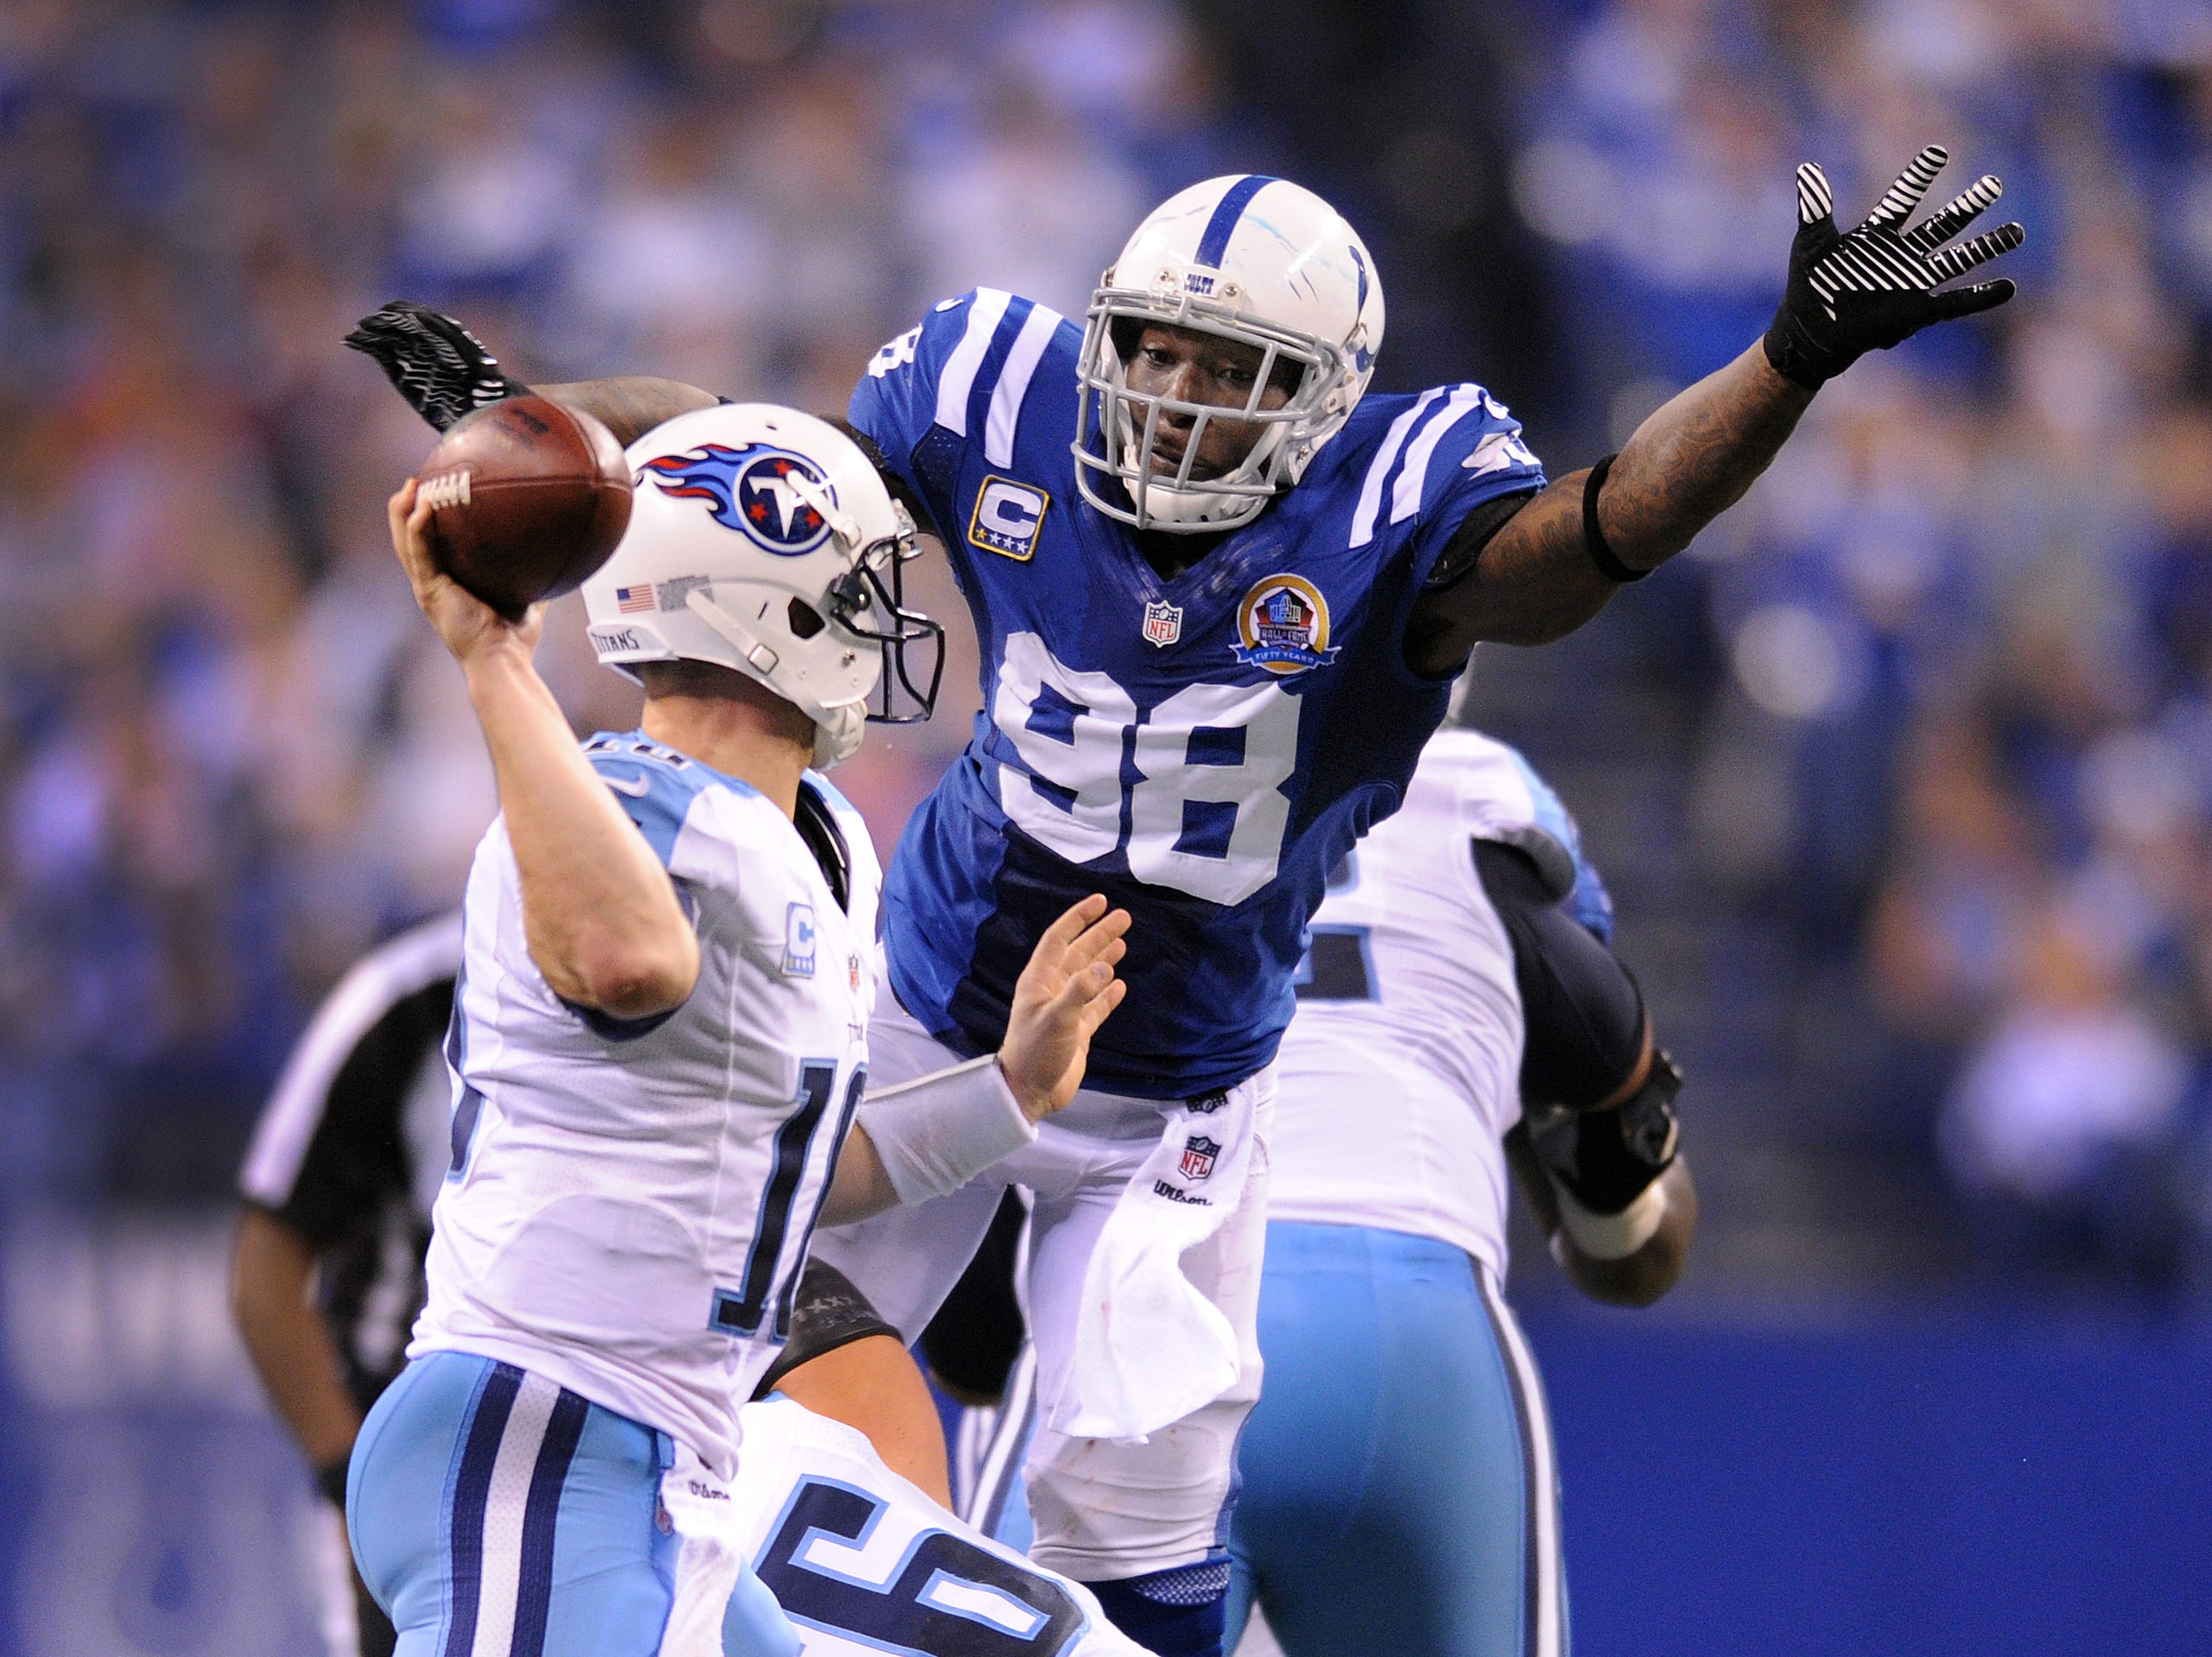 Indianapolis Colts DE Robert Mathis pressures the pass by Tennessee Titans QB Jake Locker,left, in the fourth quarter of their game Sunday, December 9, 2012, afternoon at Lucas Oil Stadium.